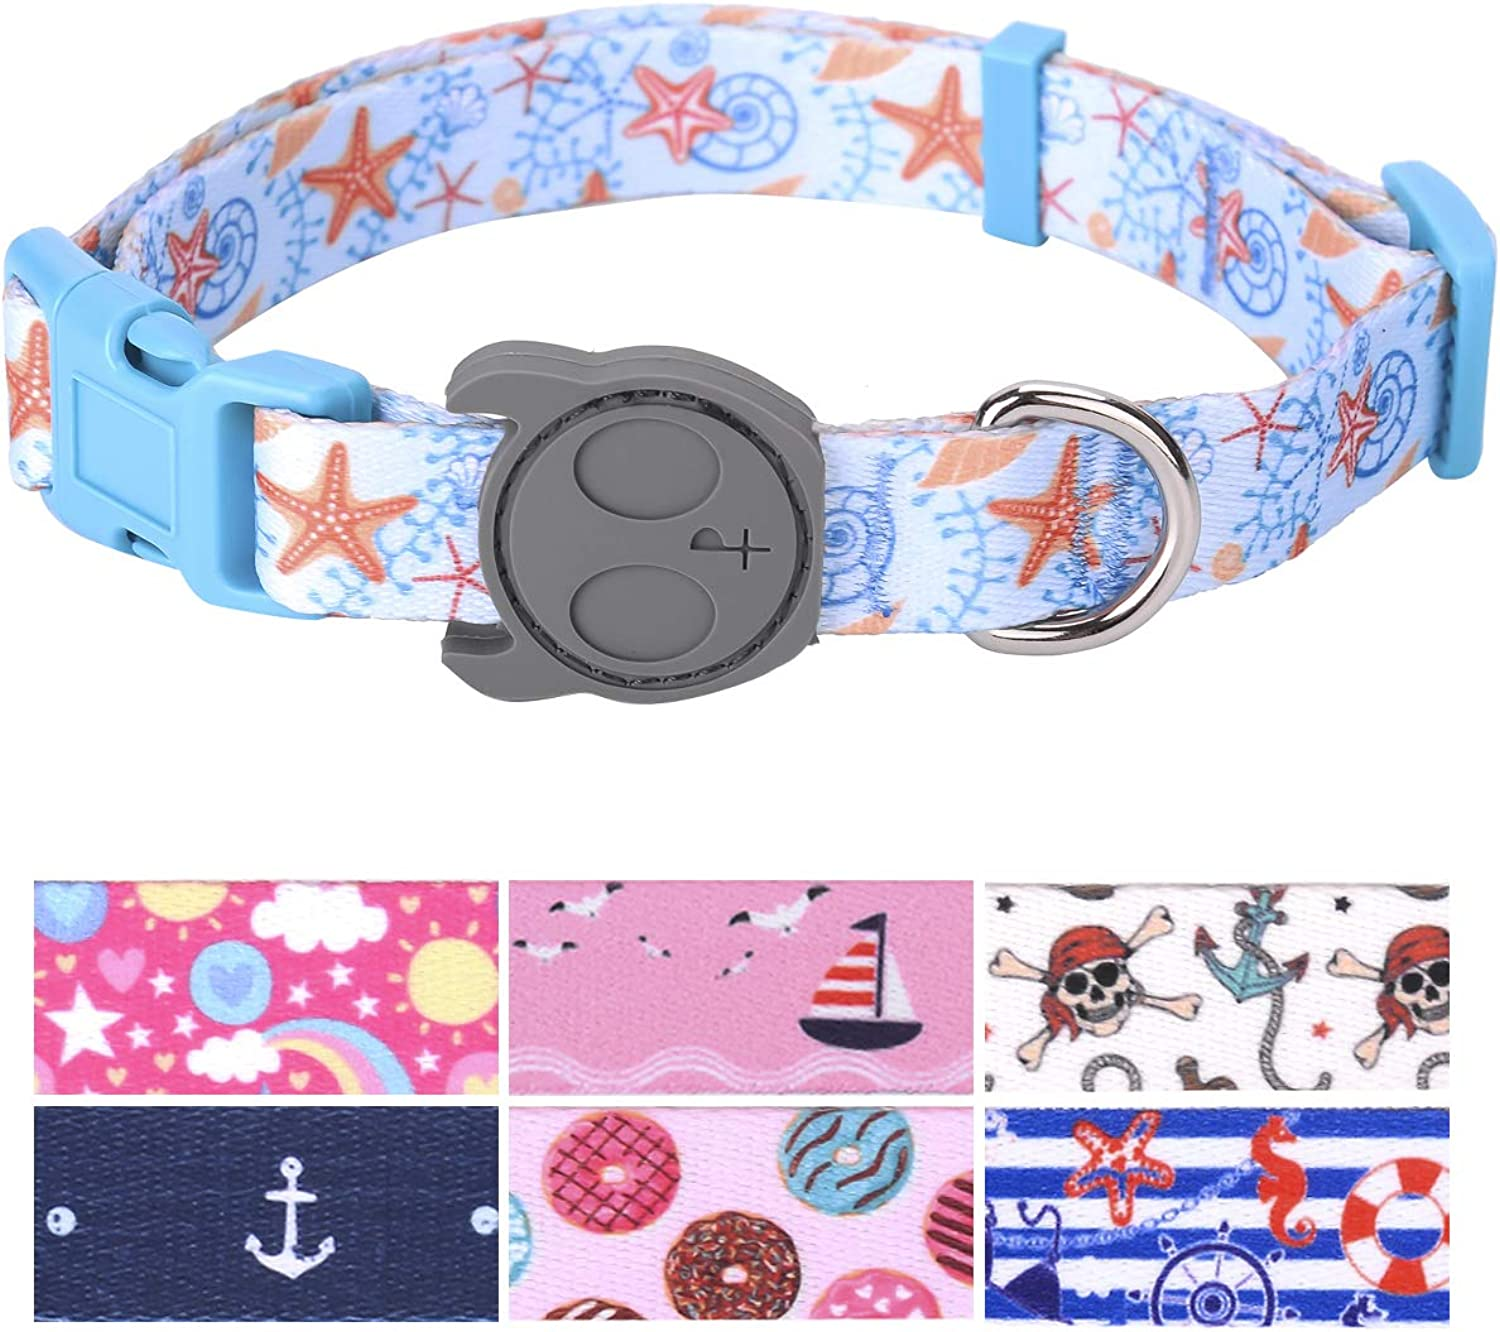 PetANTastic Best Adjustable Large Dog Collar Durable Soft & Heavy Duty with Cool Summer Beach Design, Outdoor & Indoor use Comfort Dog Collar for Girls, Boys, Puppy, Adults